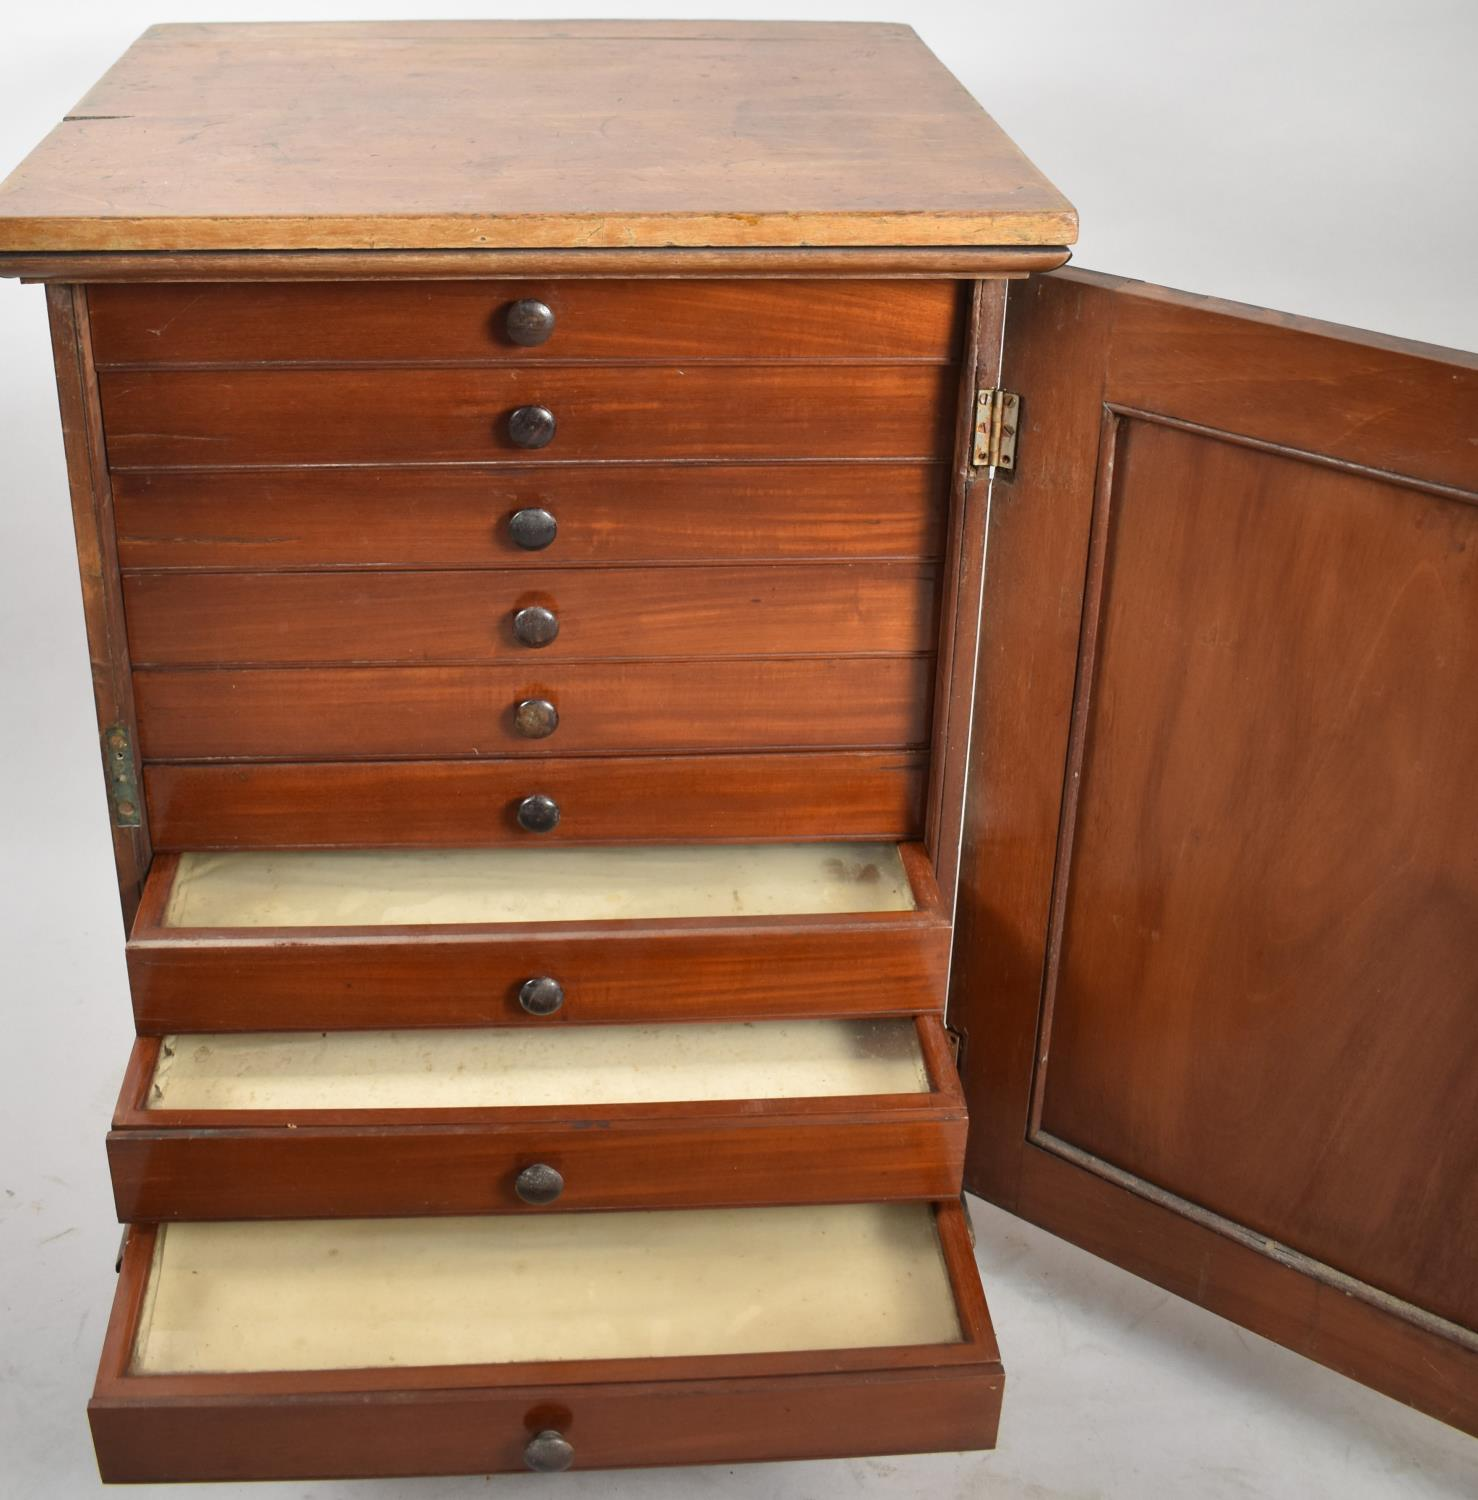 A Late 19th/Early 20th Century Mahogany Ten Drawer Collectors Cabinet with Panelled Door and - Image 2 of 2